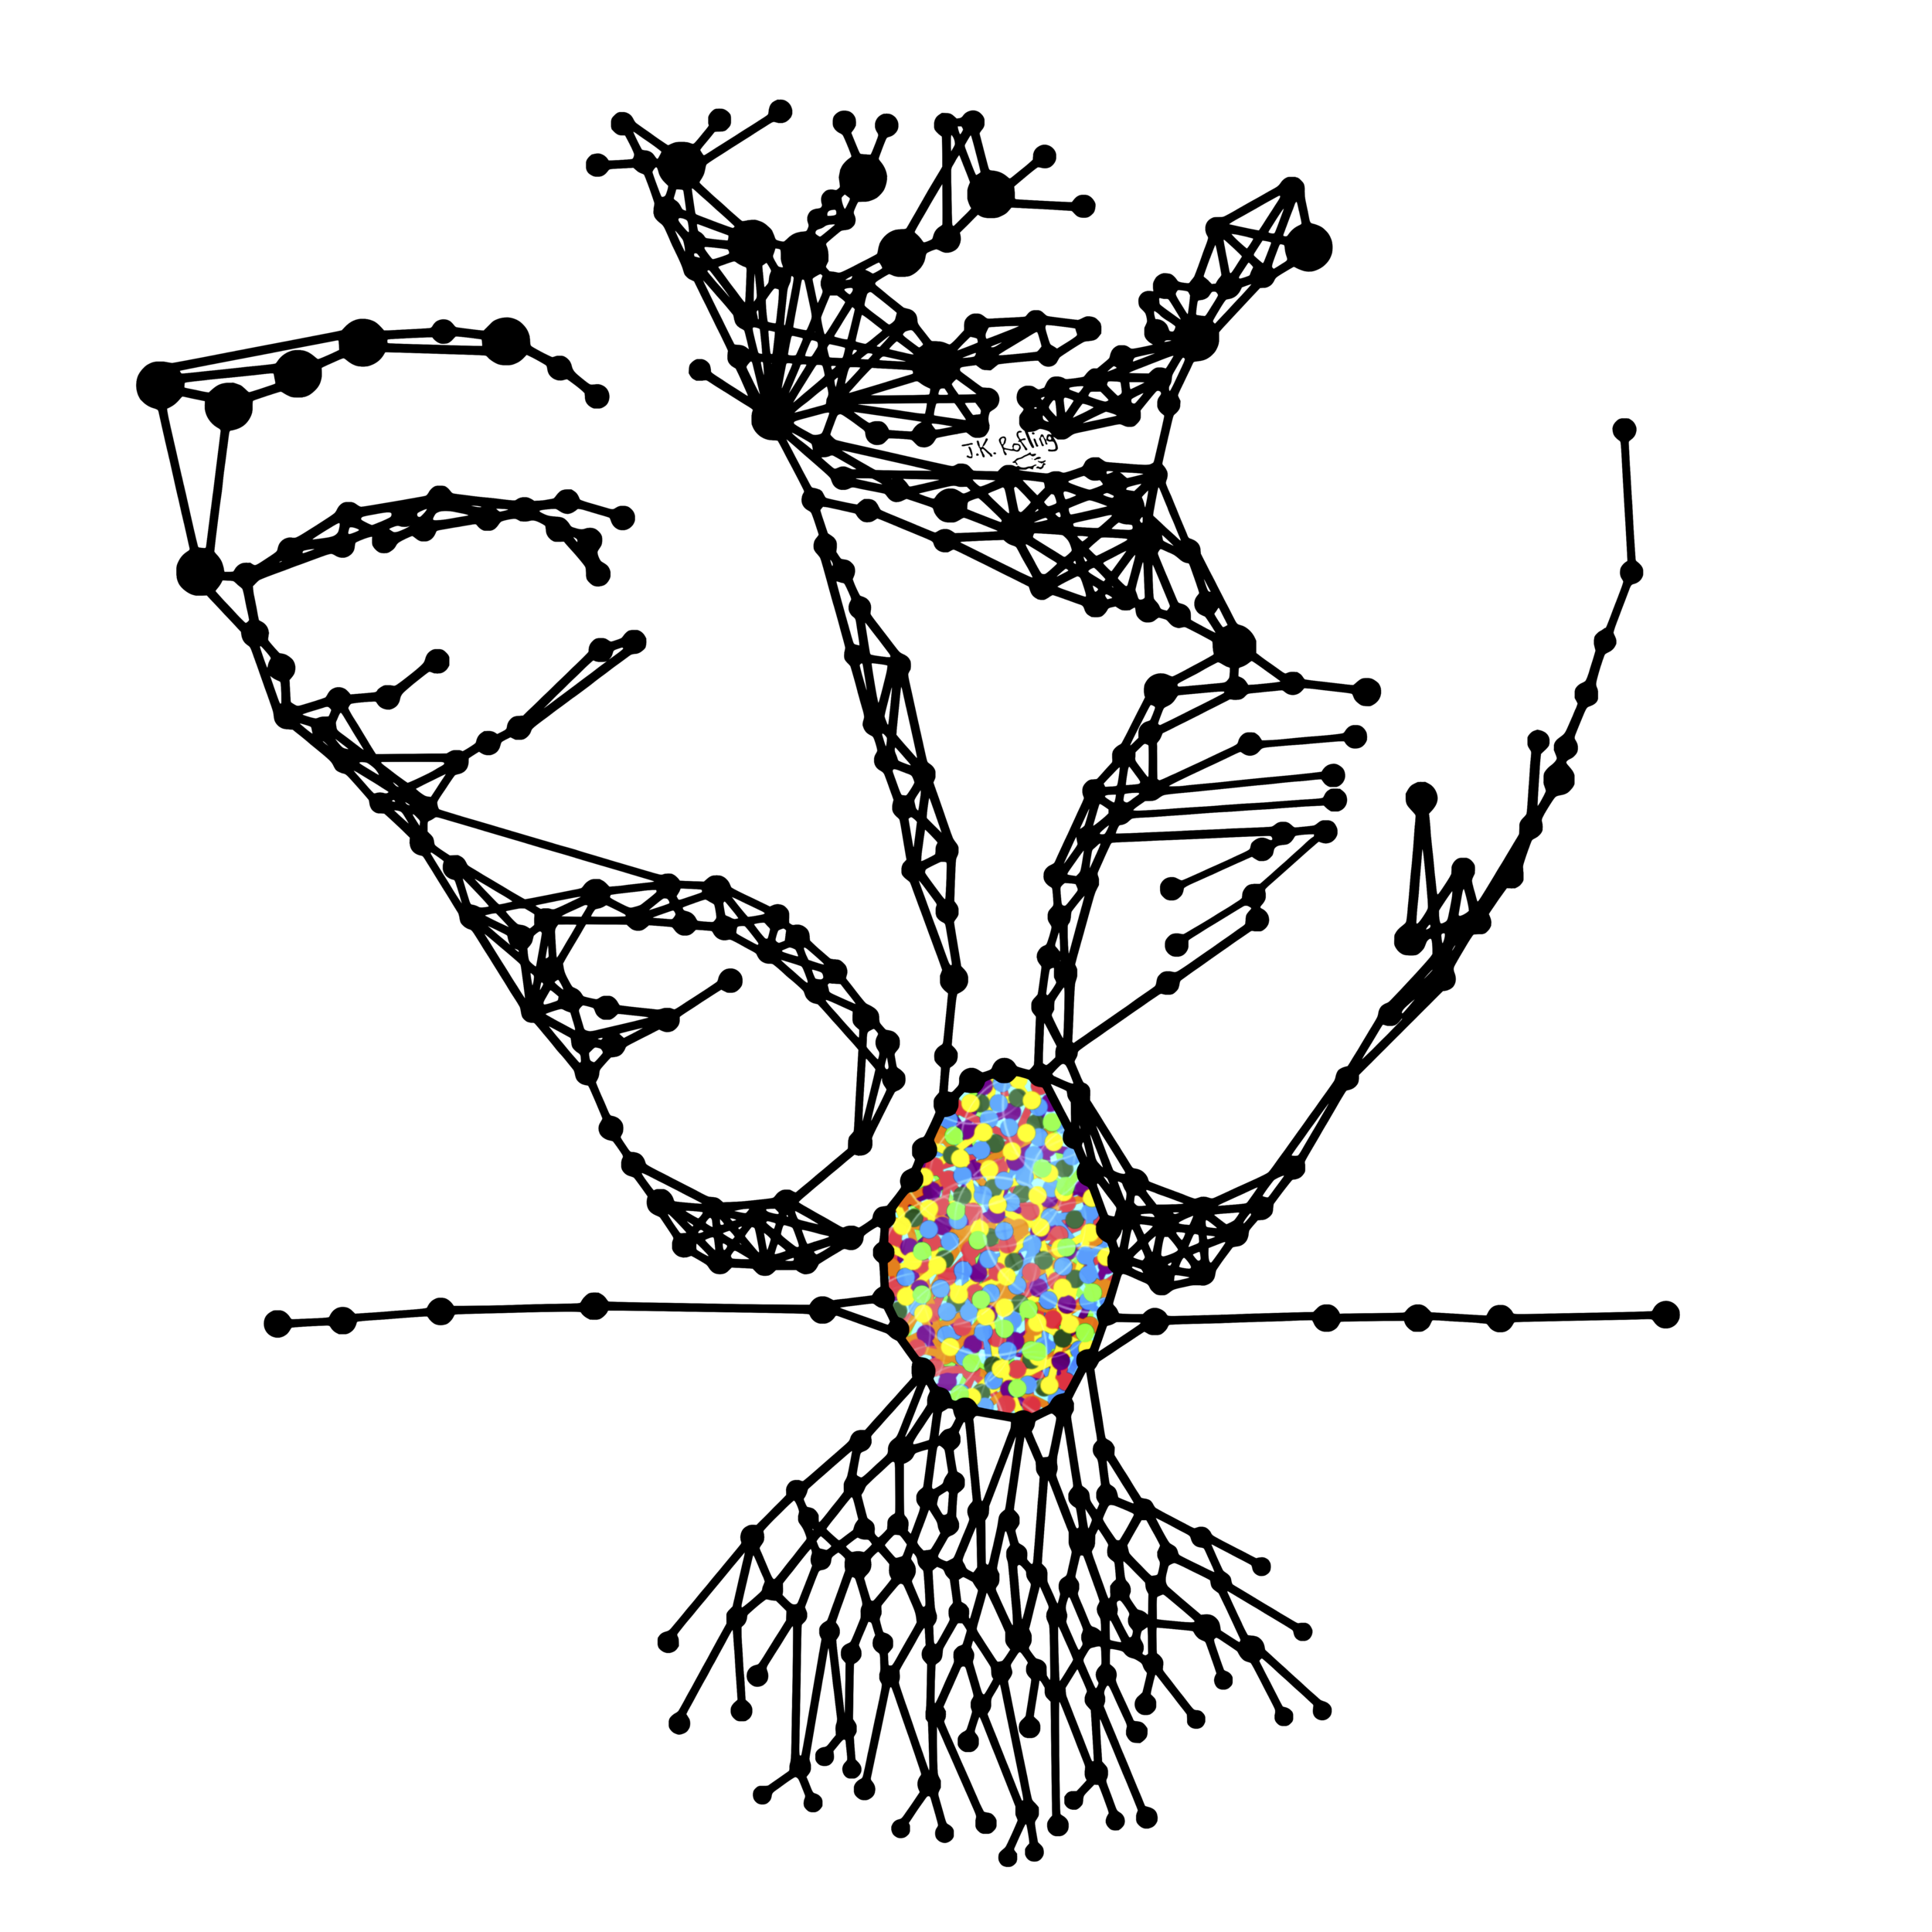 the Seed0.png